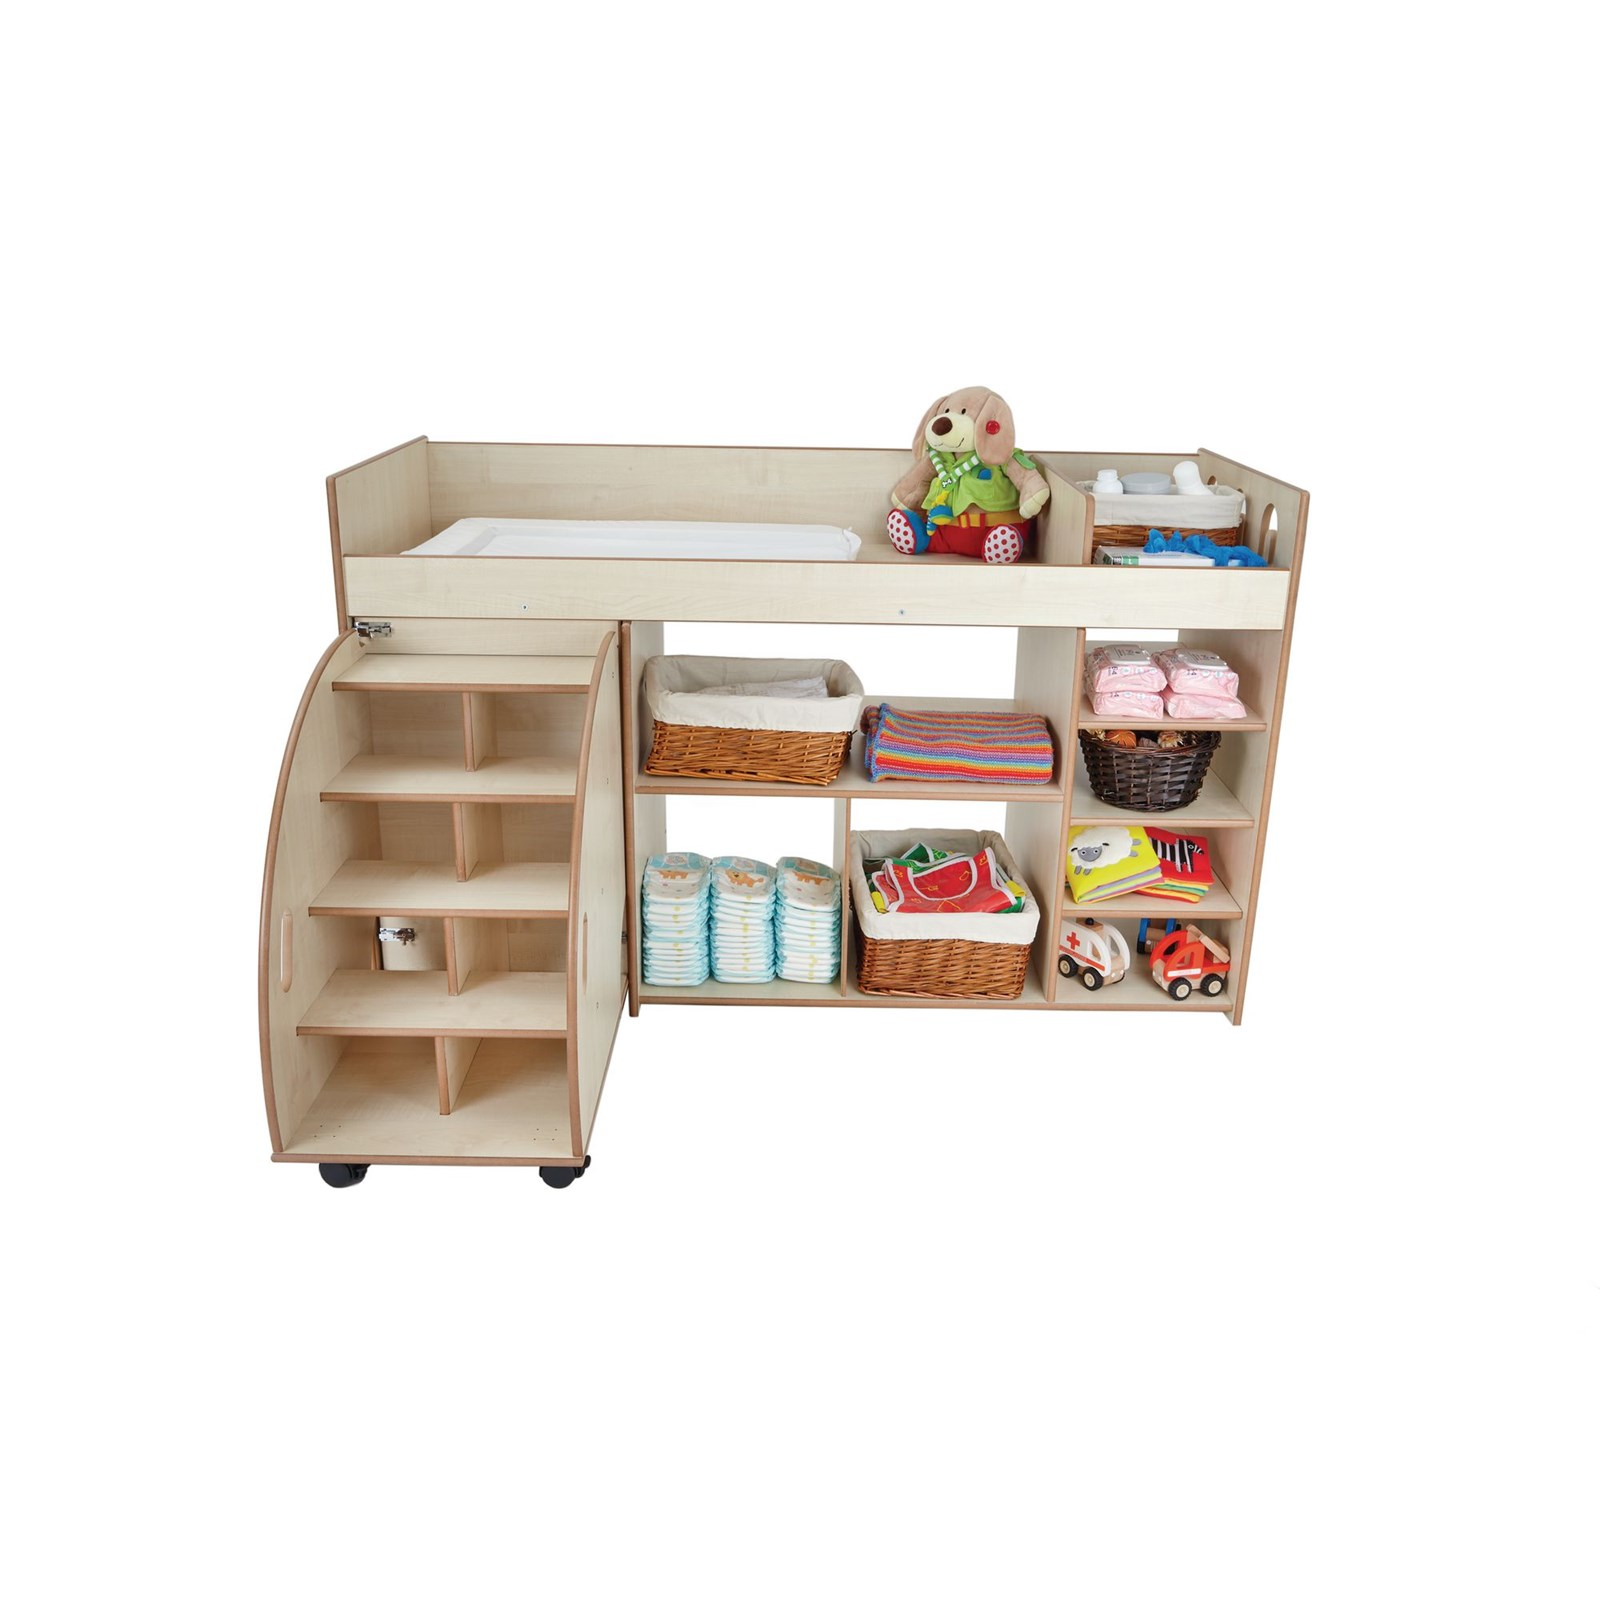 Wooden Baby Changing Station with Steps